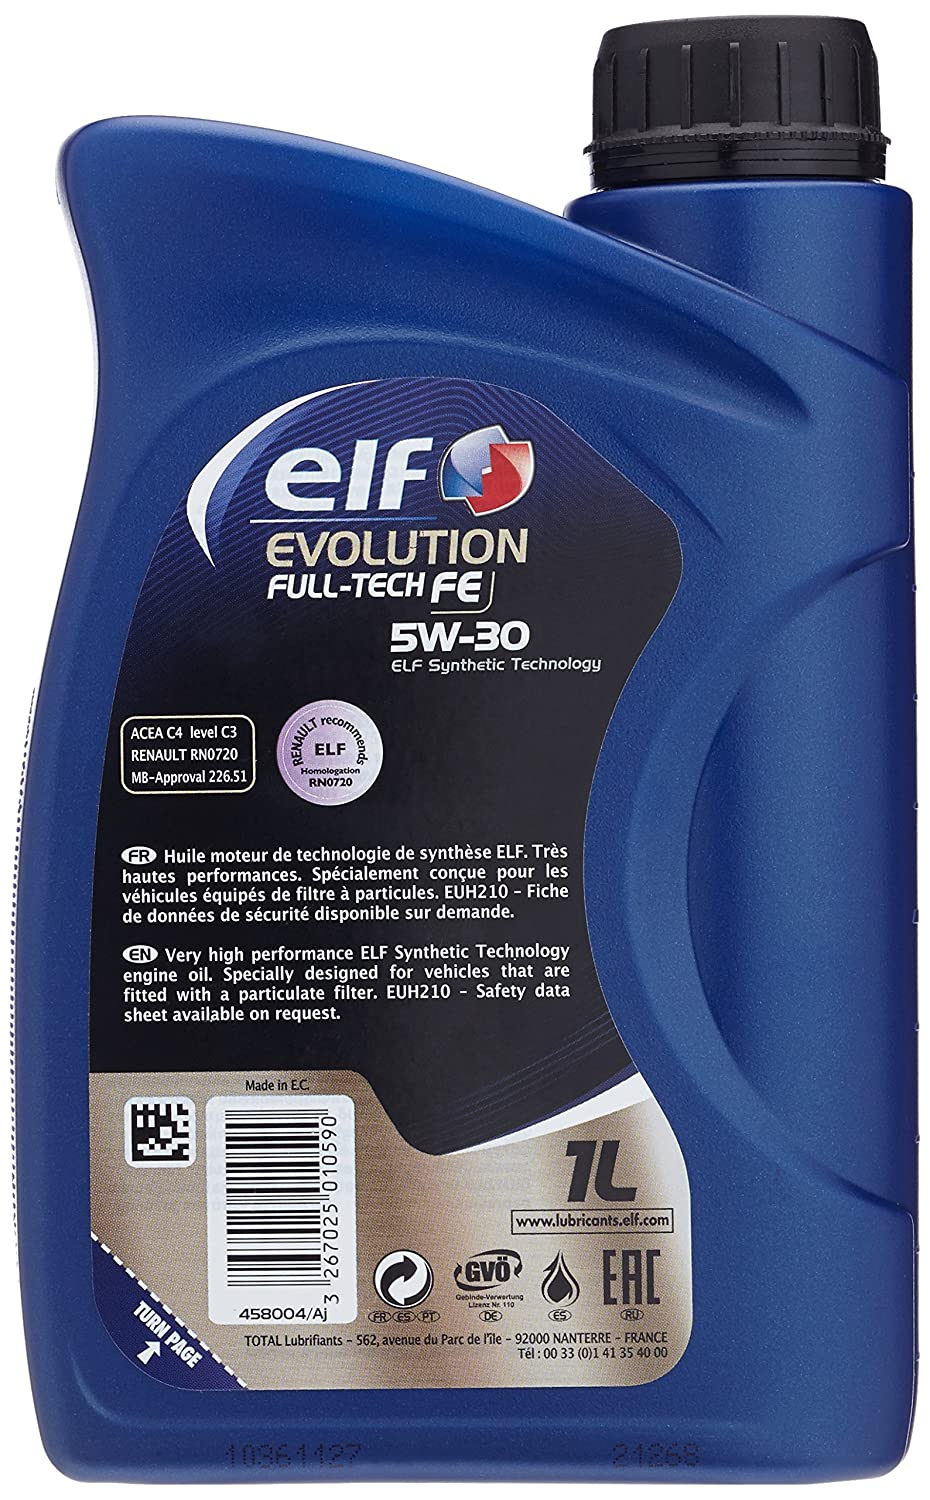 Elf ELSO5301 Evolution Fulltech FE 5W30 1L, 1 litro: Amazon.es: Coche y moto